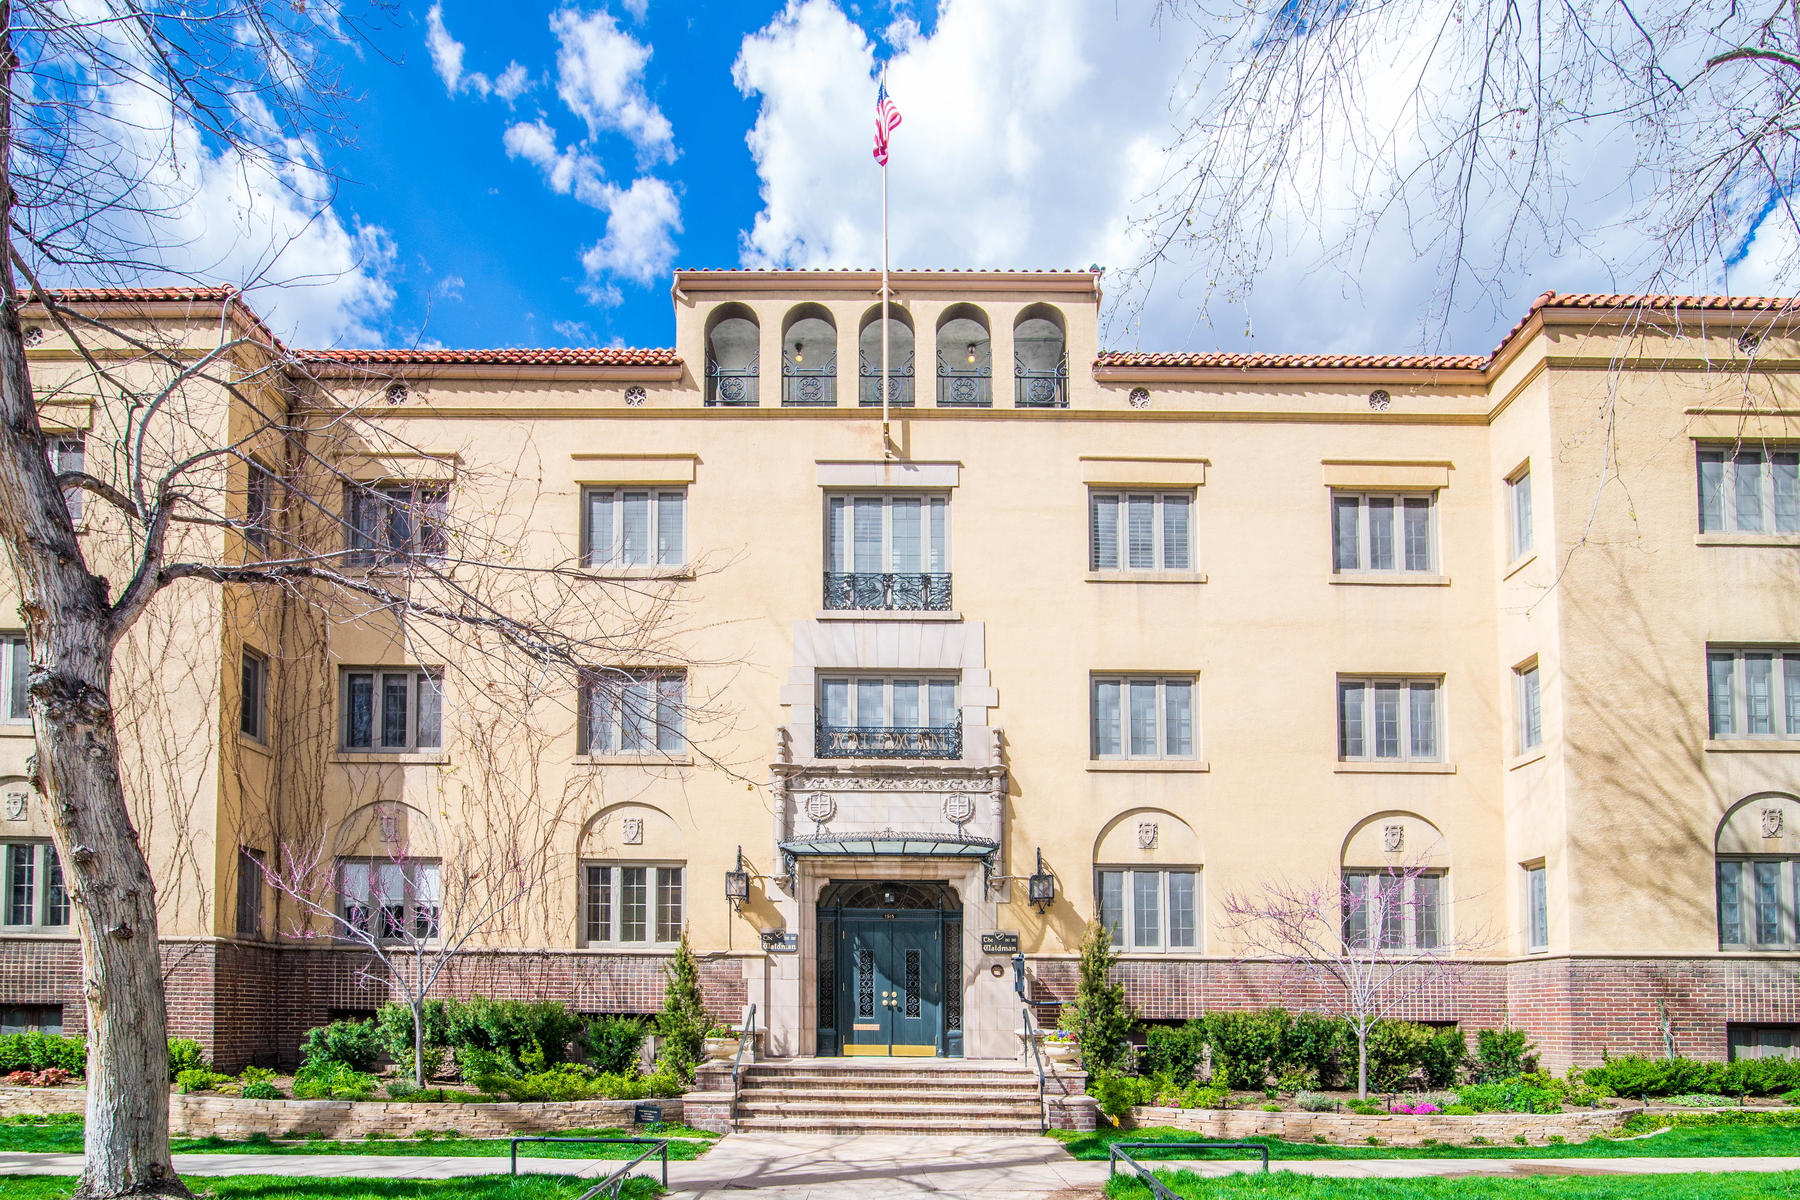 Property for Active at Lovely And Charming Top Floor Condo In The Historic Waldman On Cheesman Park 1515 E 9th Ave #315 Denver, Colorado 80218 United States